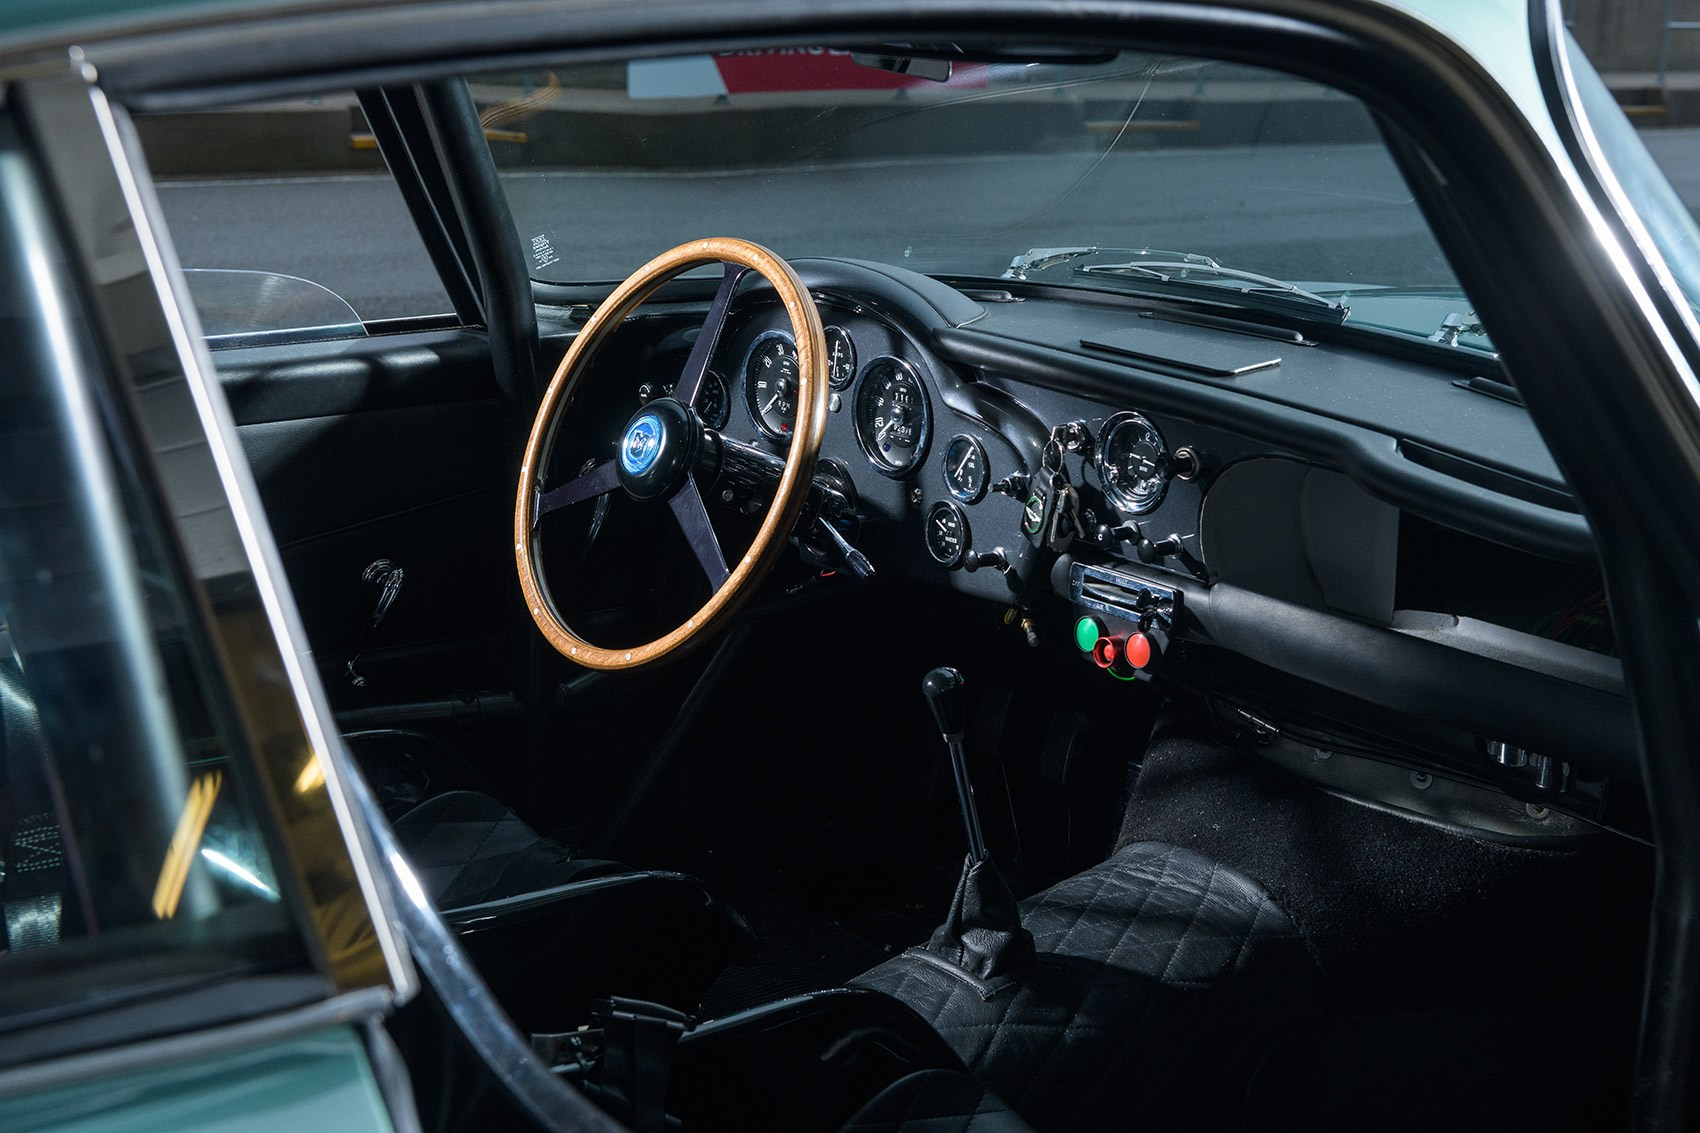 Inside the Aston Martin DB4 GT Continuation cabin